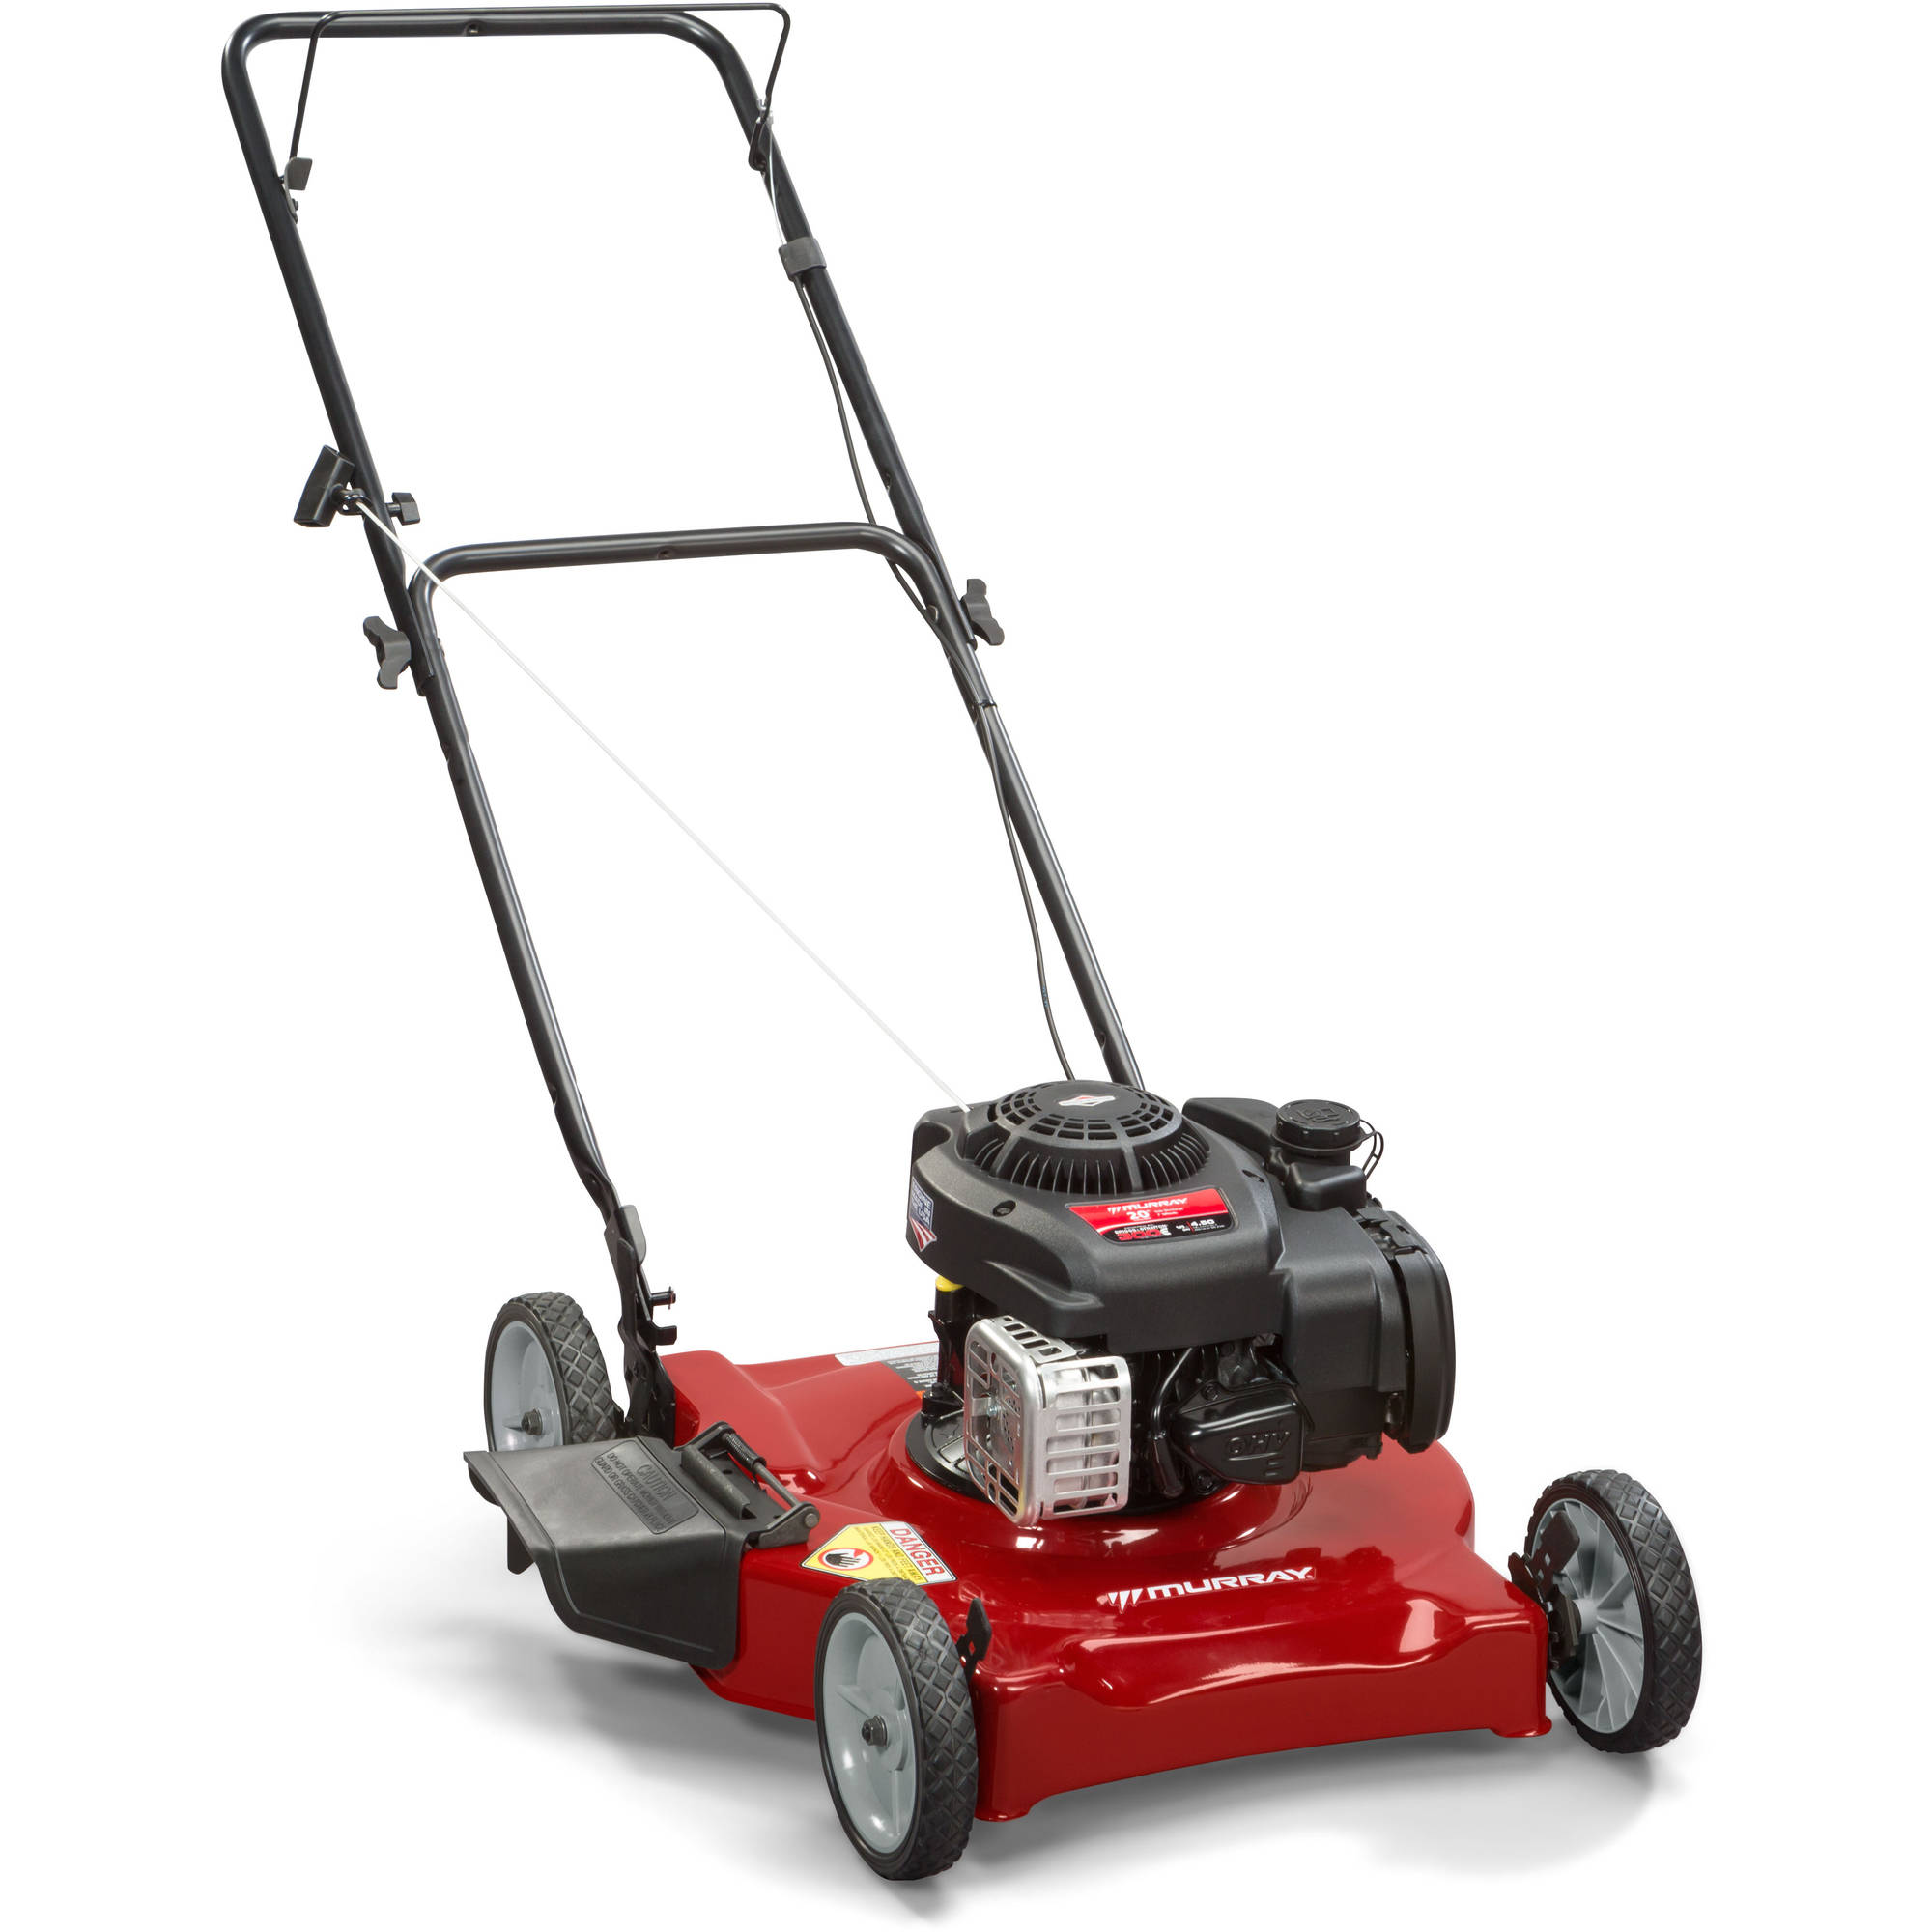 murray 20 125cc gas powered side discharged push lawn mower rh walmart com Murray Trimmers Murray M22450 Parts Diagram